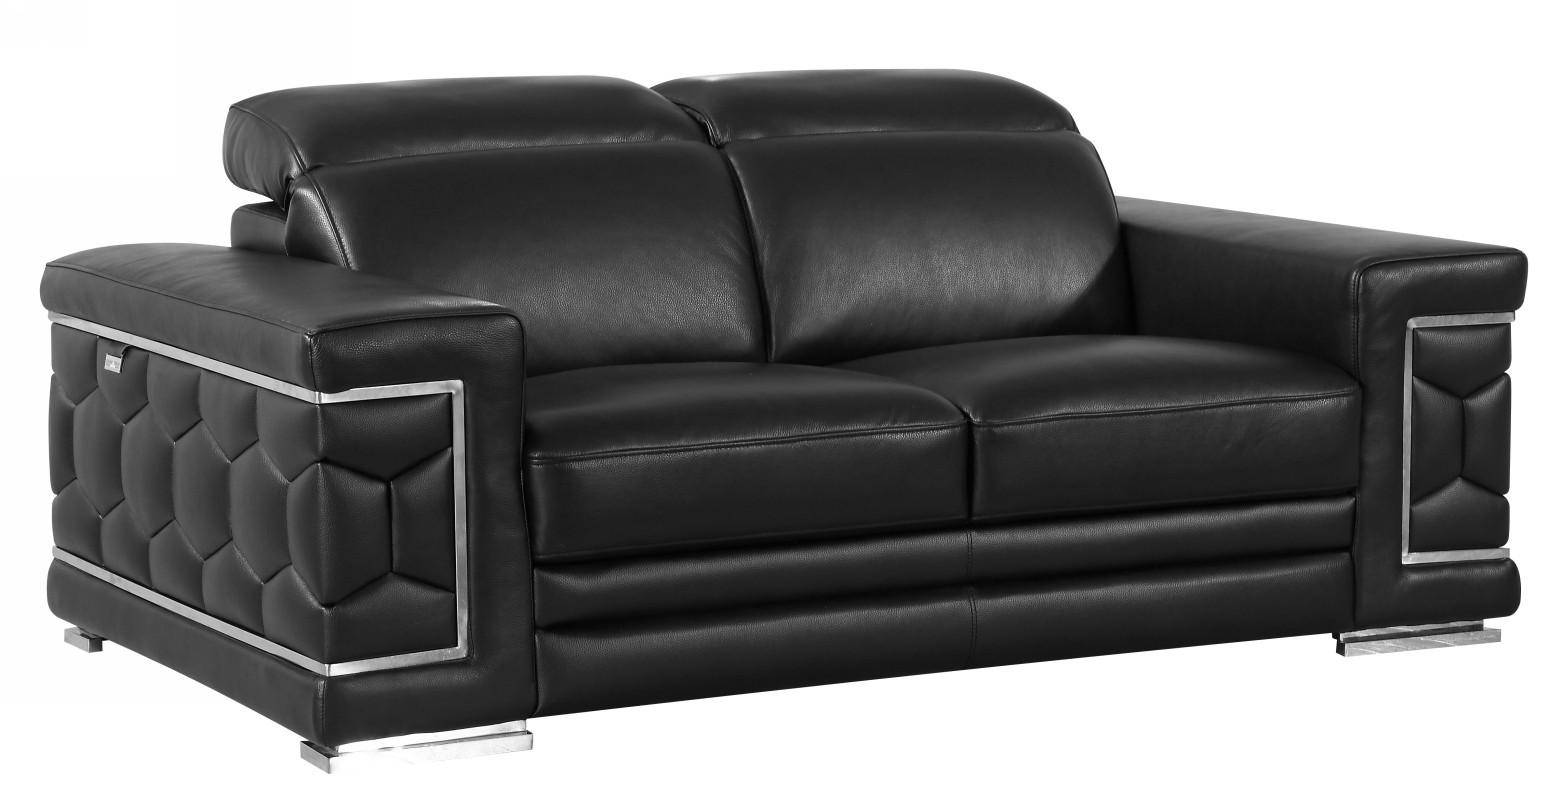 Sofas, tables, office desks, office chairs, decor, carpets, outdoor furniture. Buy Soflex Blake Sofa Set 3 Pcs in Black, Genuine Leather ...